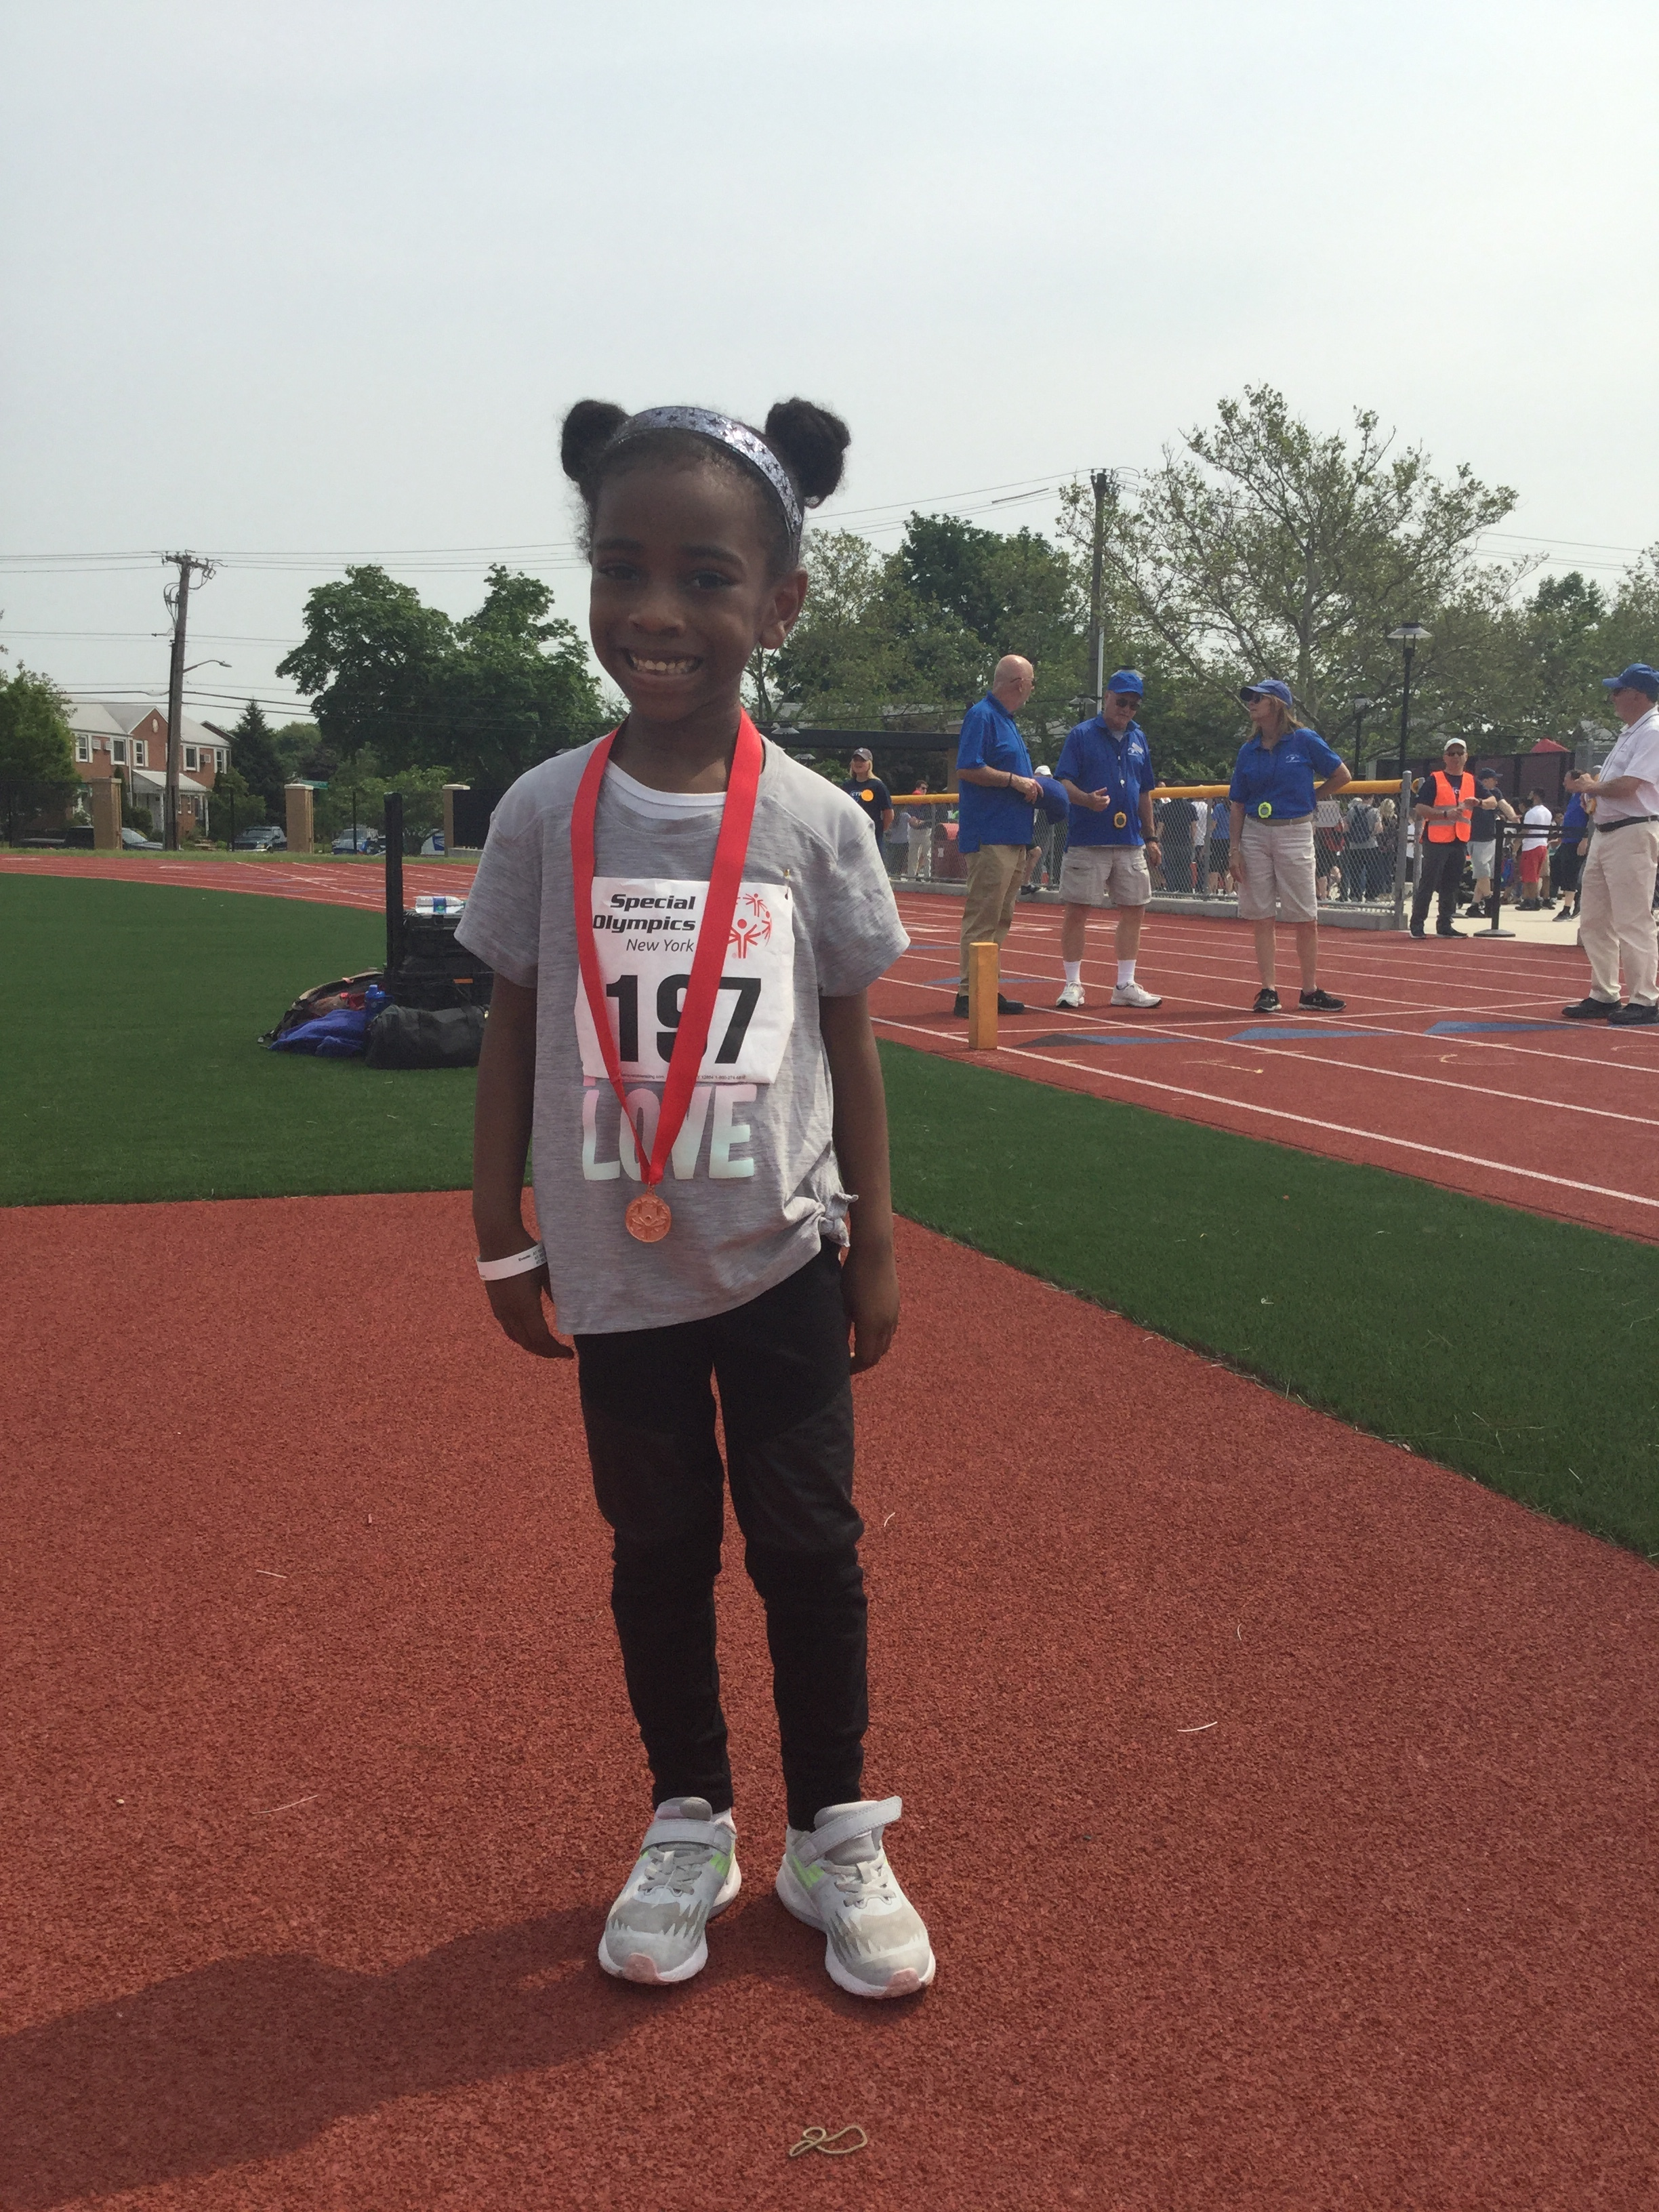 Alisa, one of our youngest athletes, placed third in the quickest division of the 50m and 100m dash against athletes nearly twice her age! Wow!